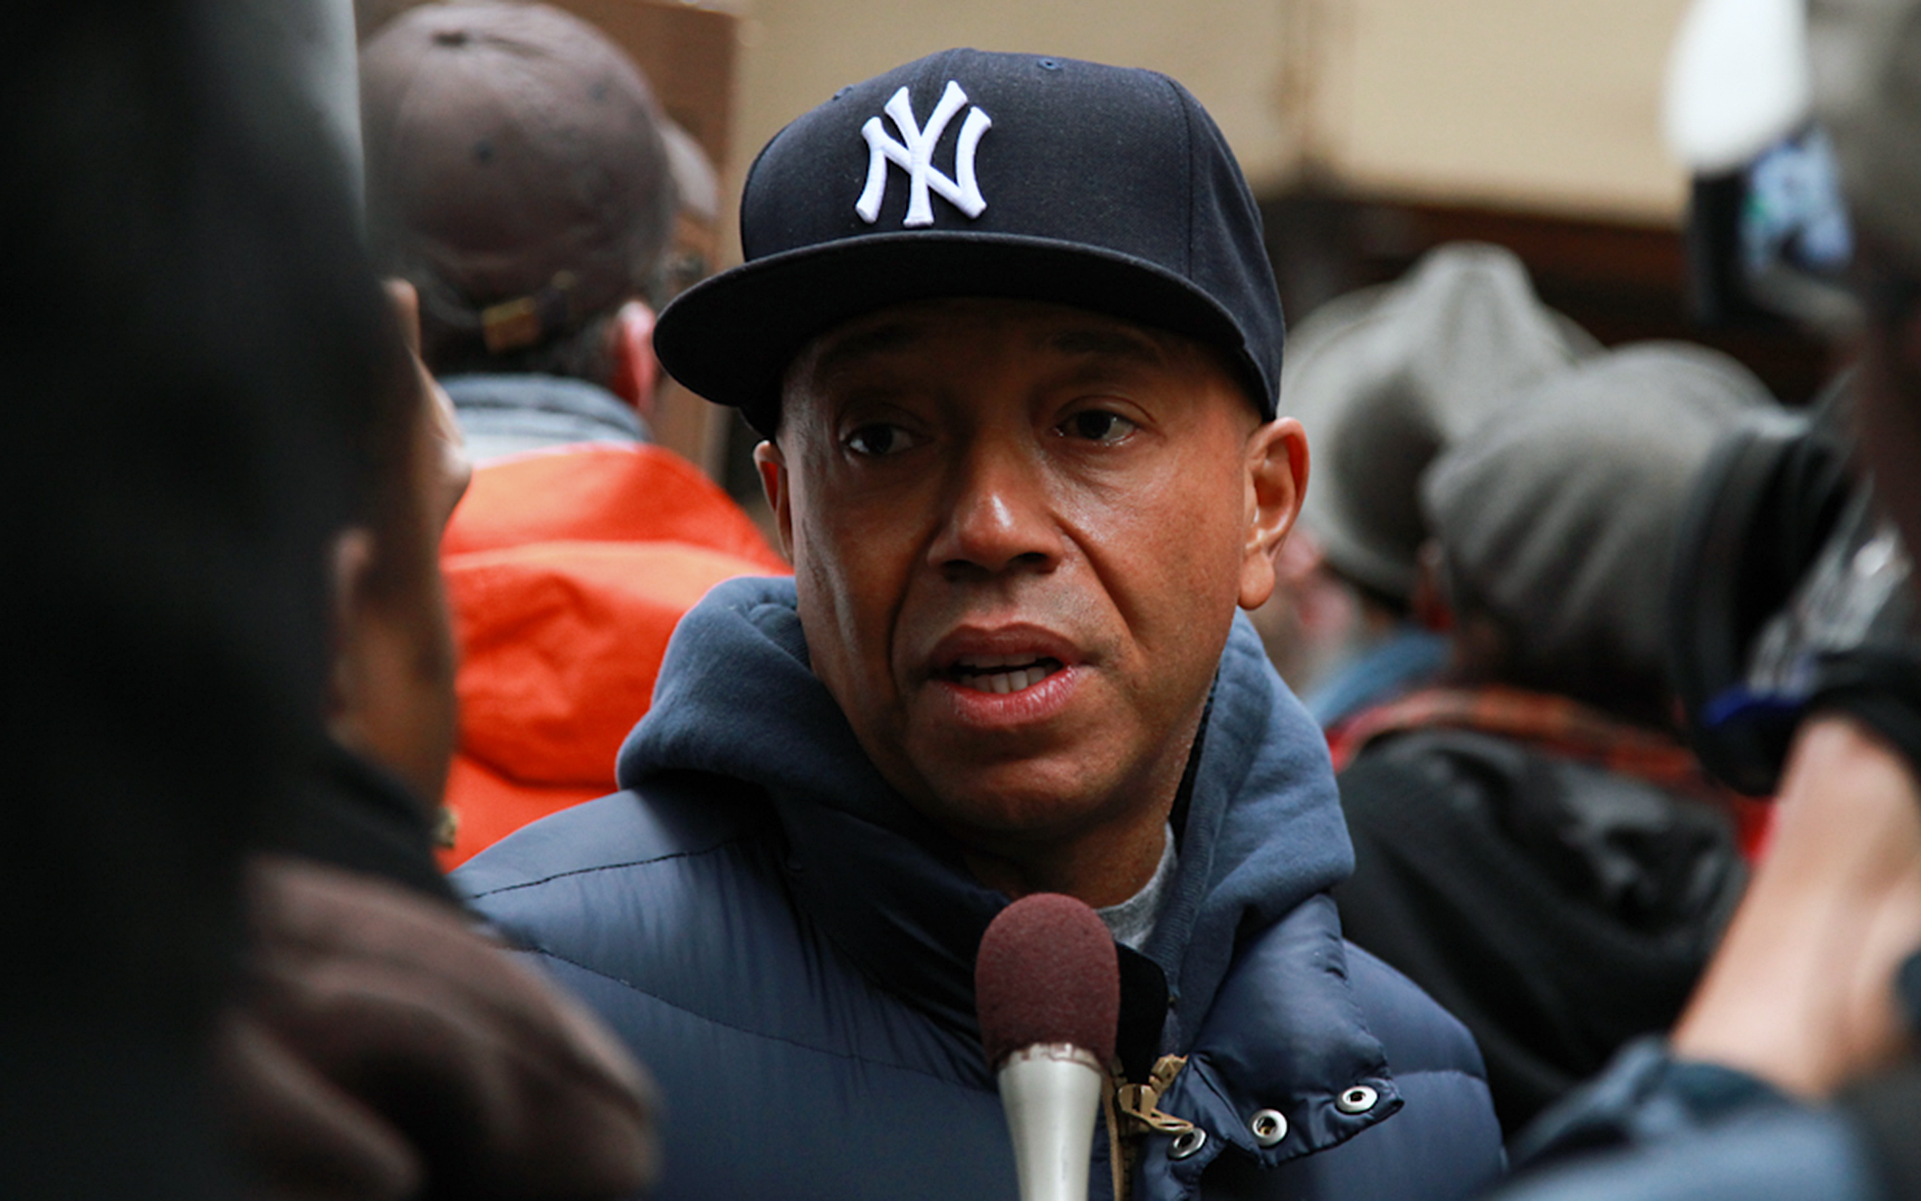 Russell Simmons supports Prop 64 to legalize adult use cannabis in California